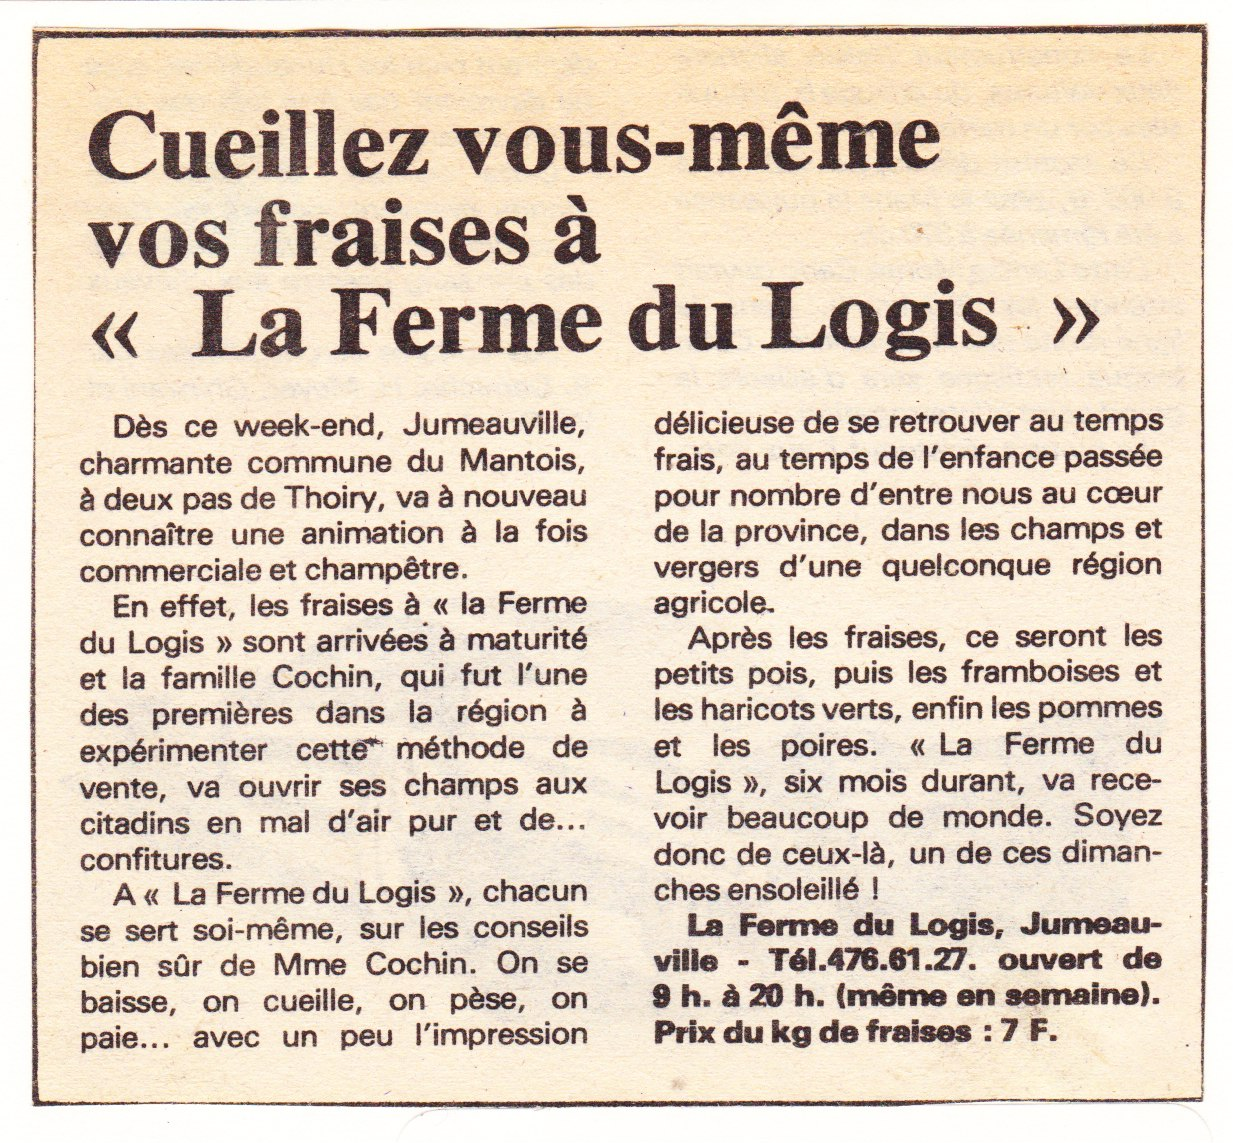 1980 Juin Le courrier de Mantes$ 001